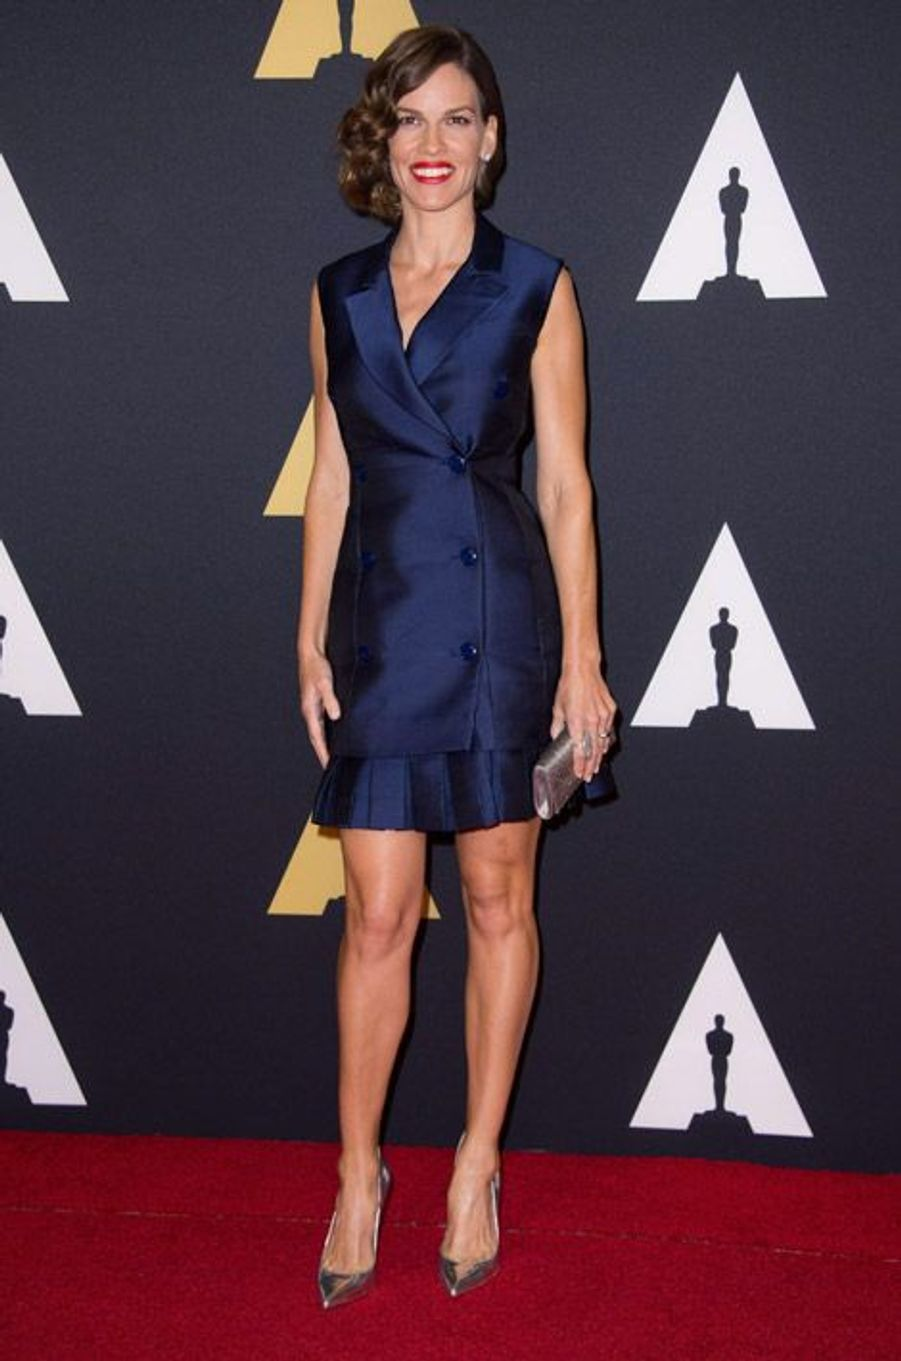 L'actrice Hilary Swank en Antonio Berardi lors du 6eme gala Annual Governors Awards à Hollywood